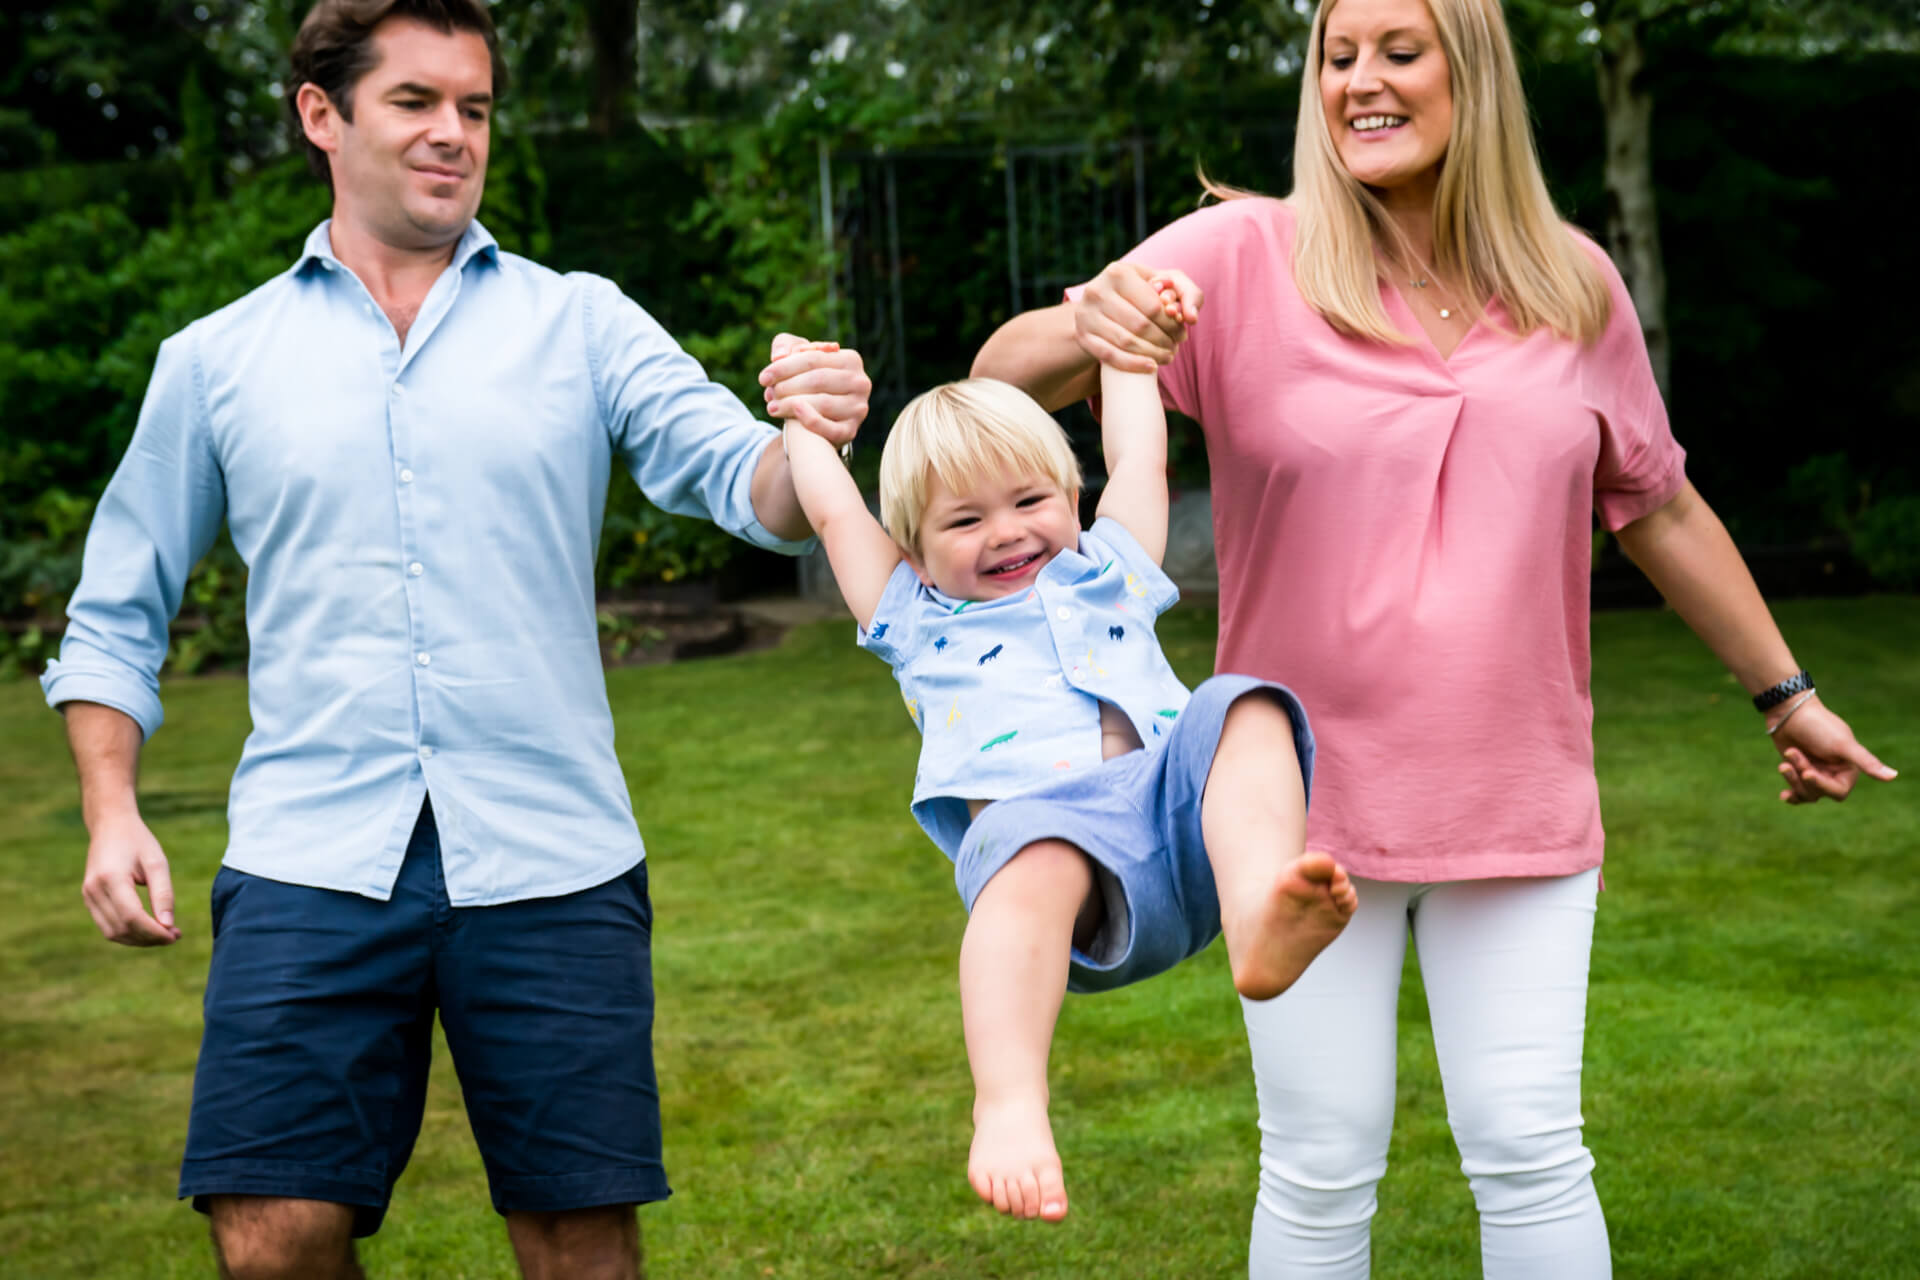 couple swinging their son